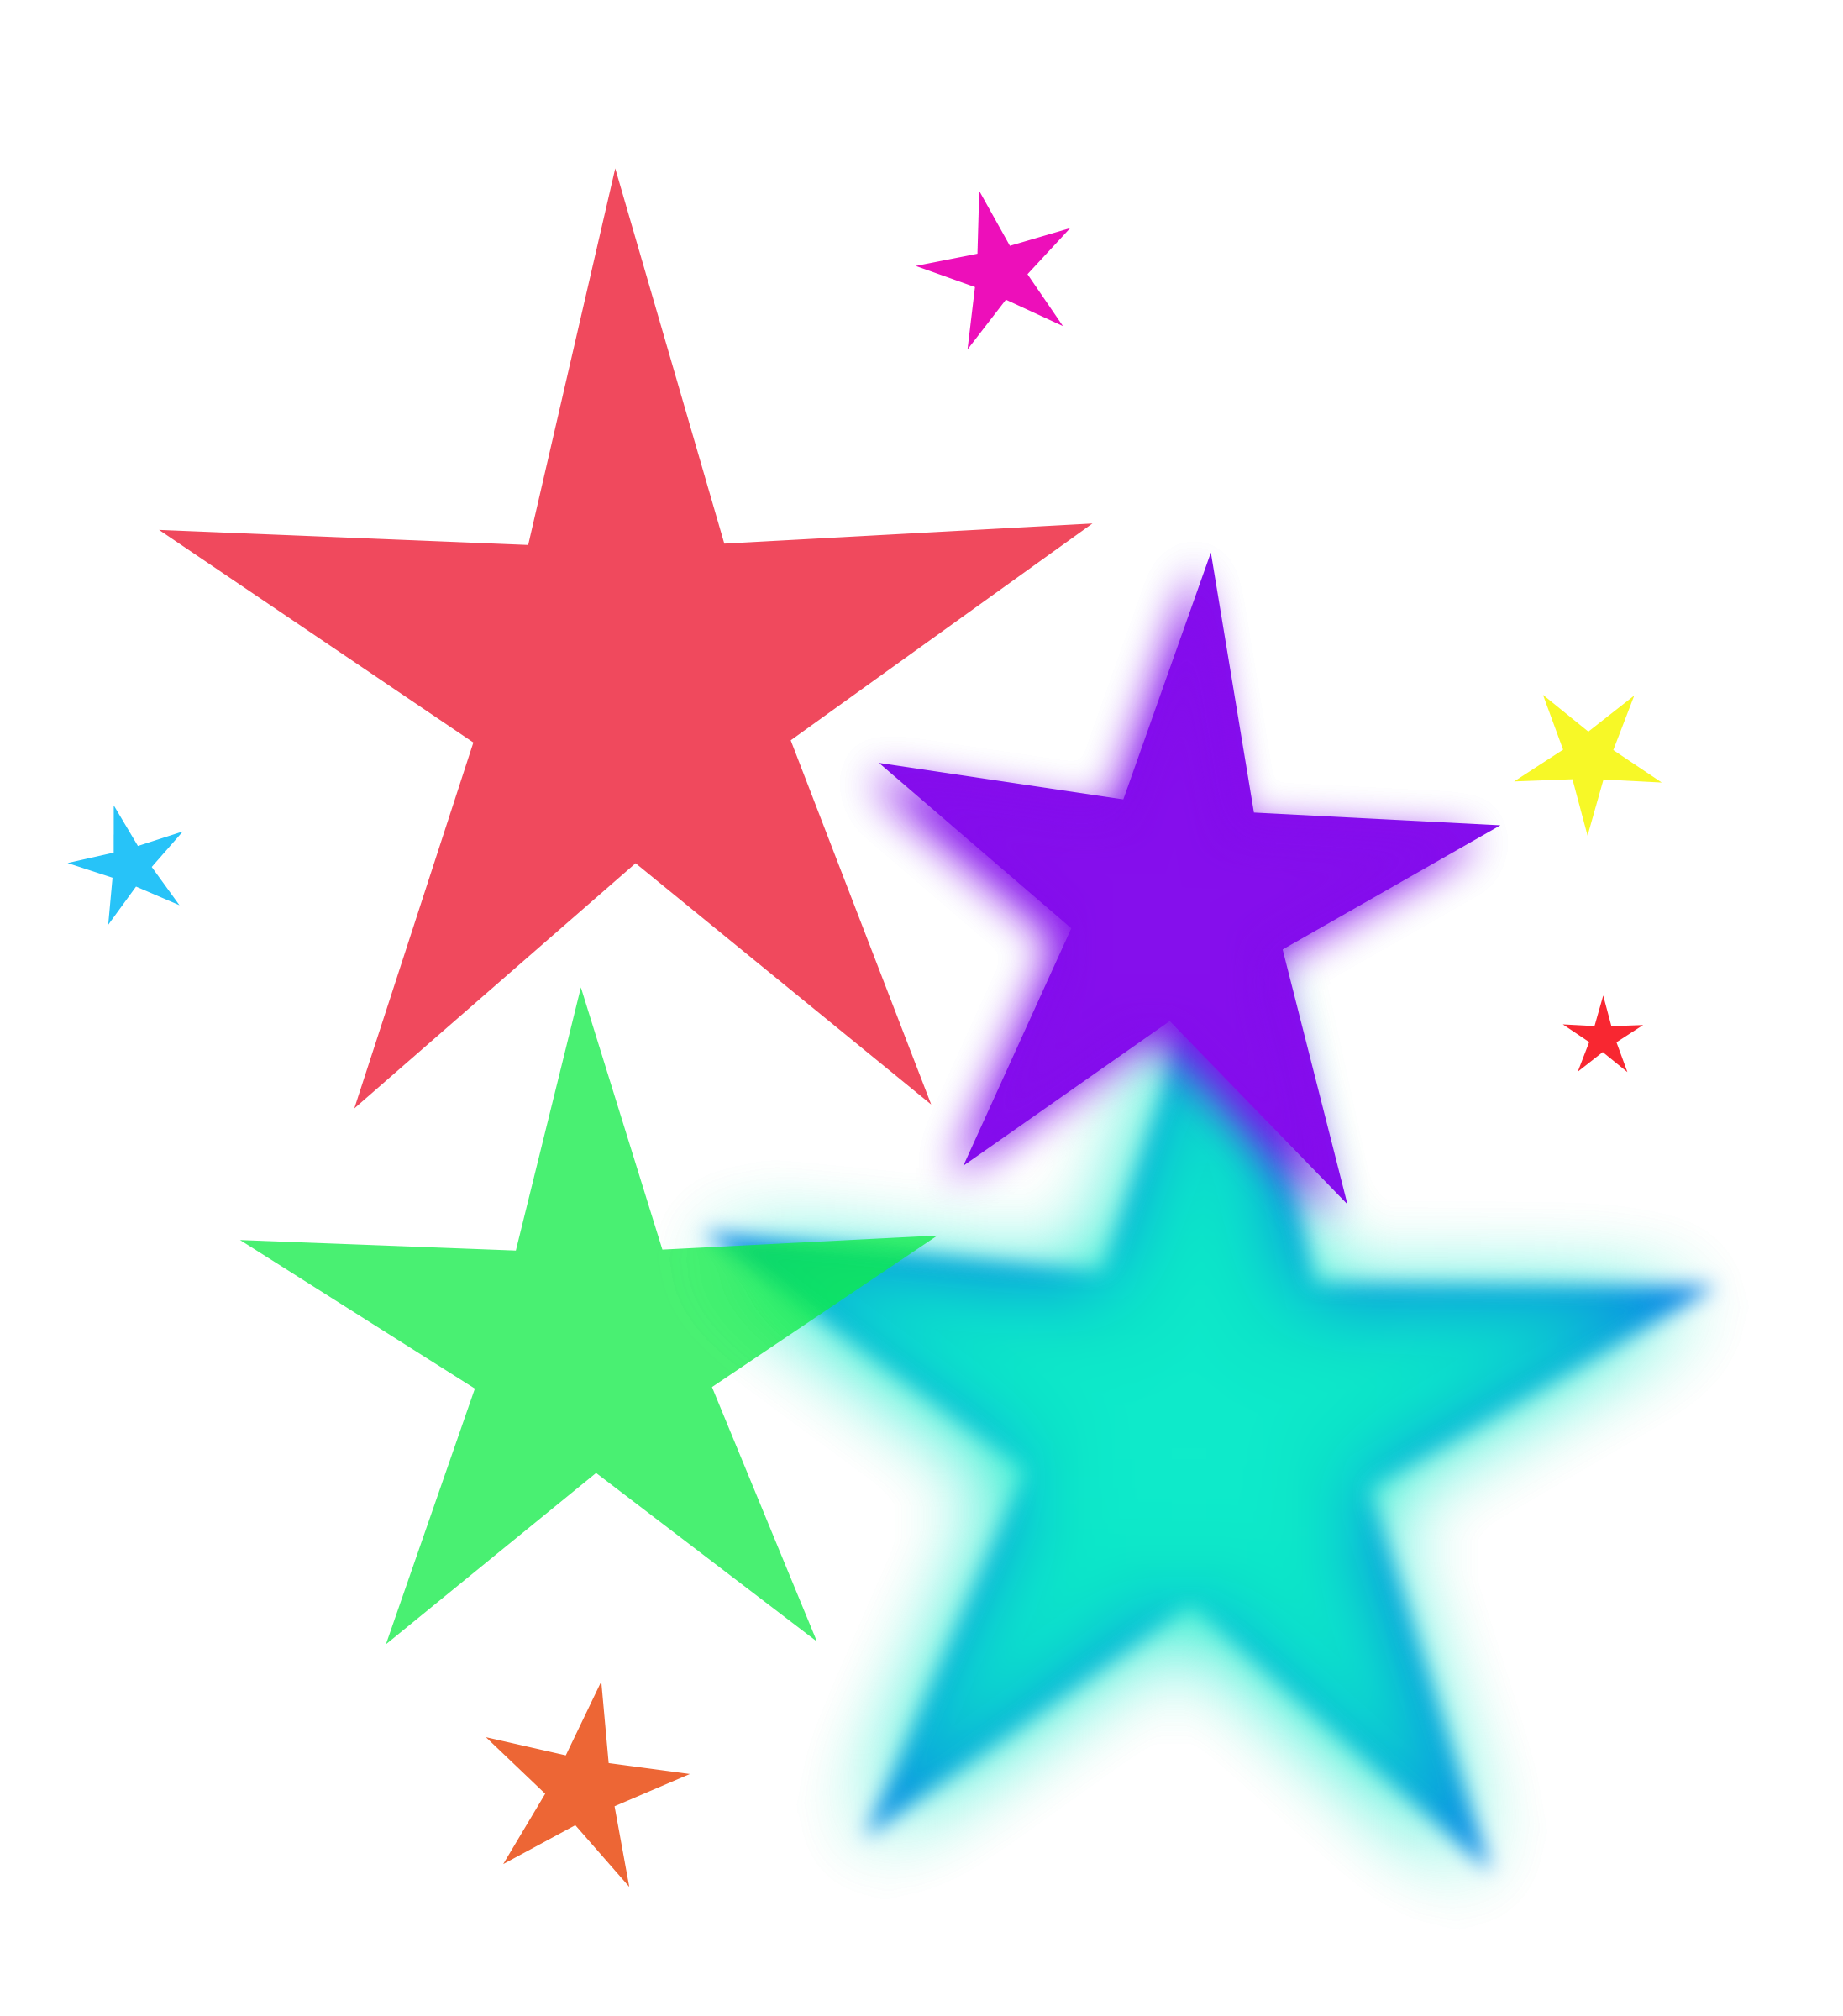 Star clip art swirl. Colorful stars and swirls